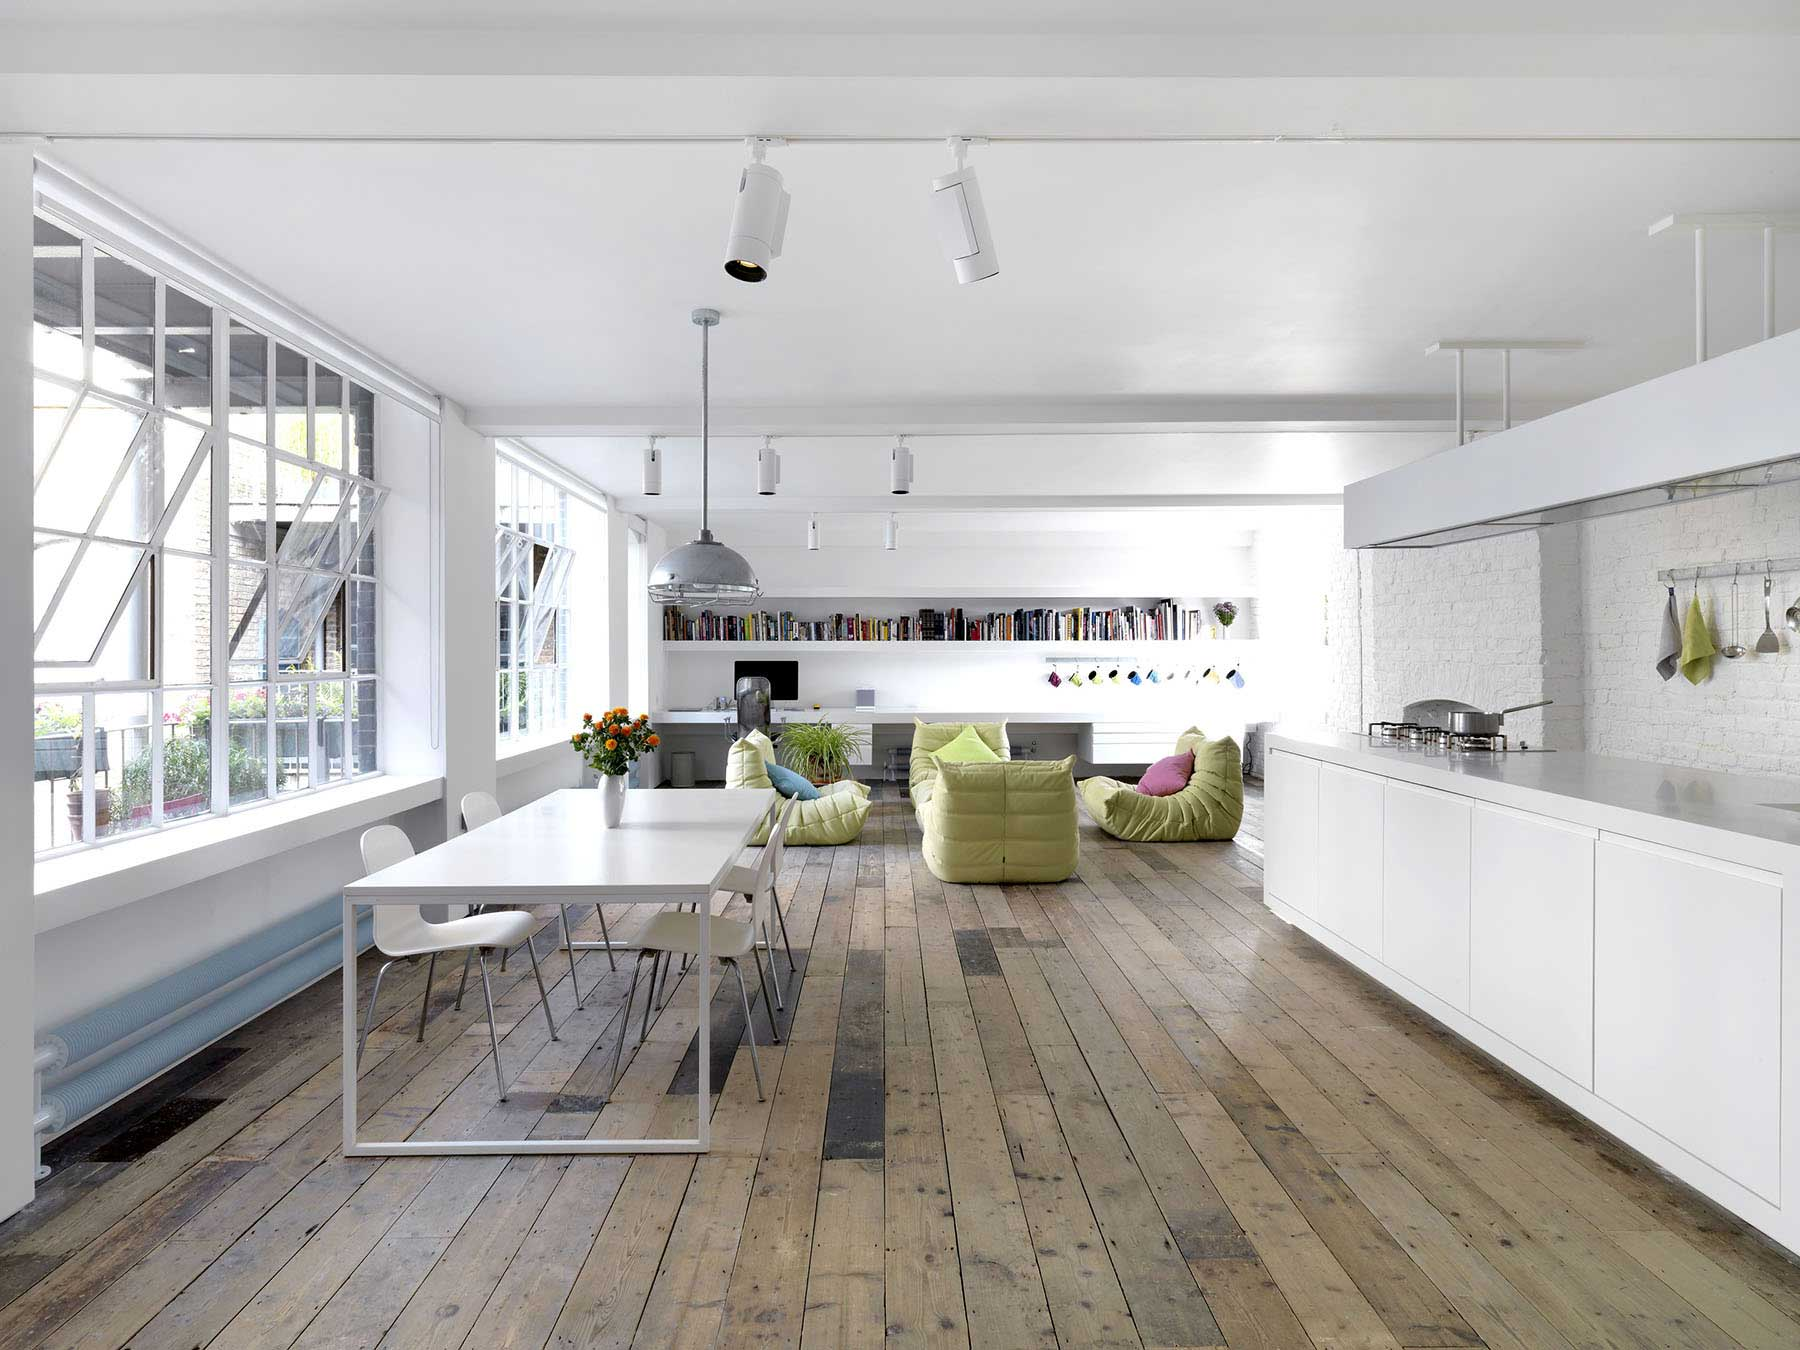 Bermondsey Warehouse Loft par FORM design architecture